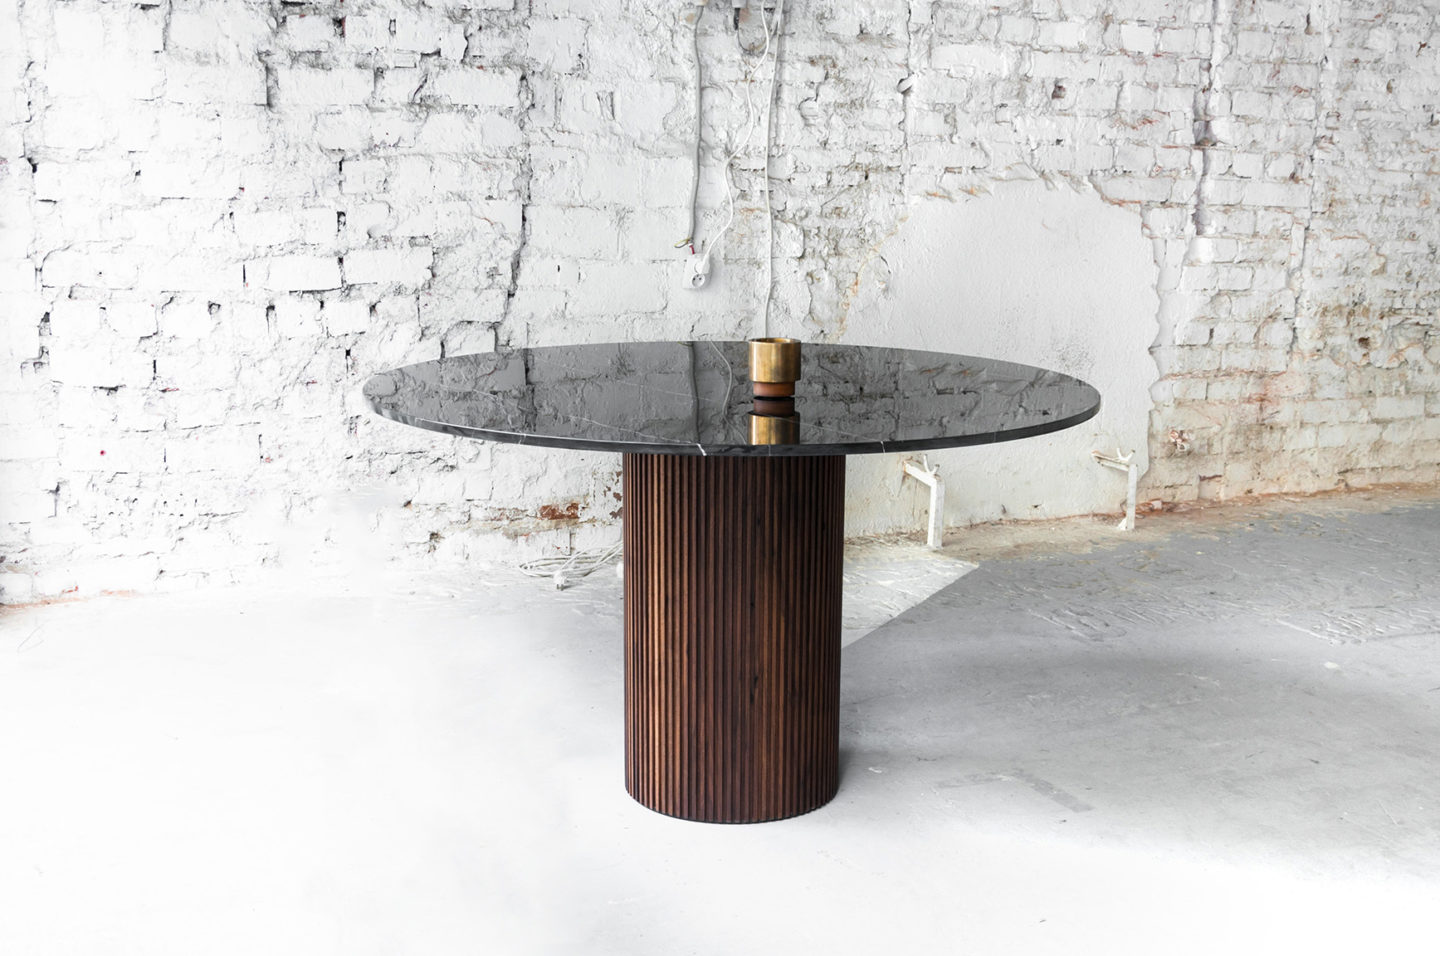 iGNANT-Design-ADesign-Awards-Ostinano-001